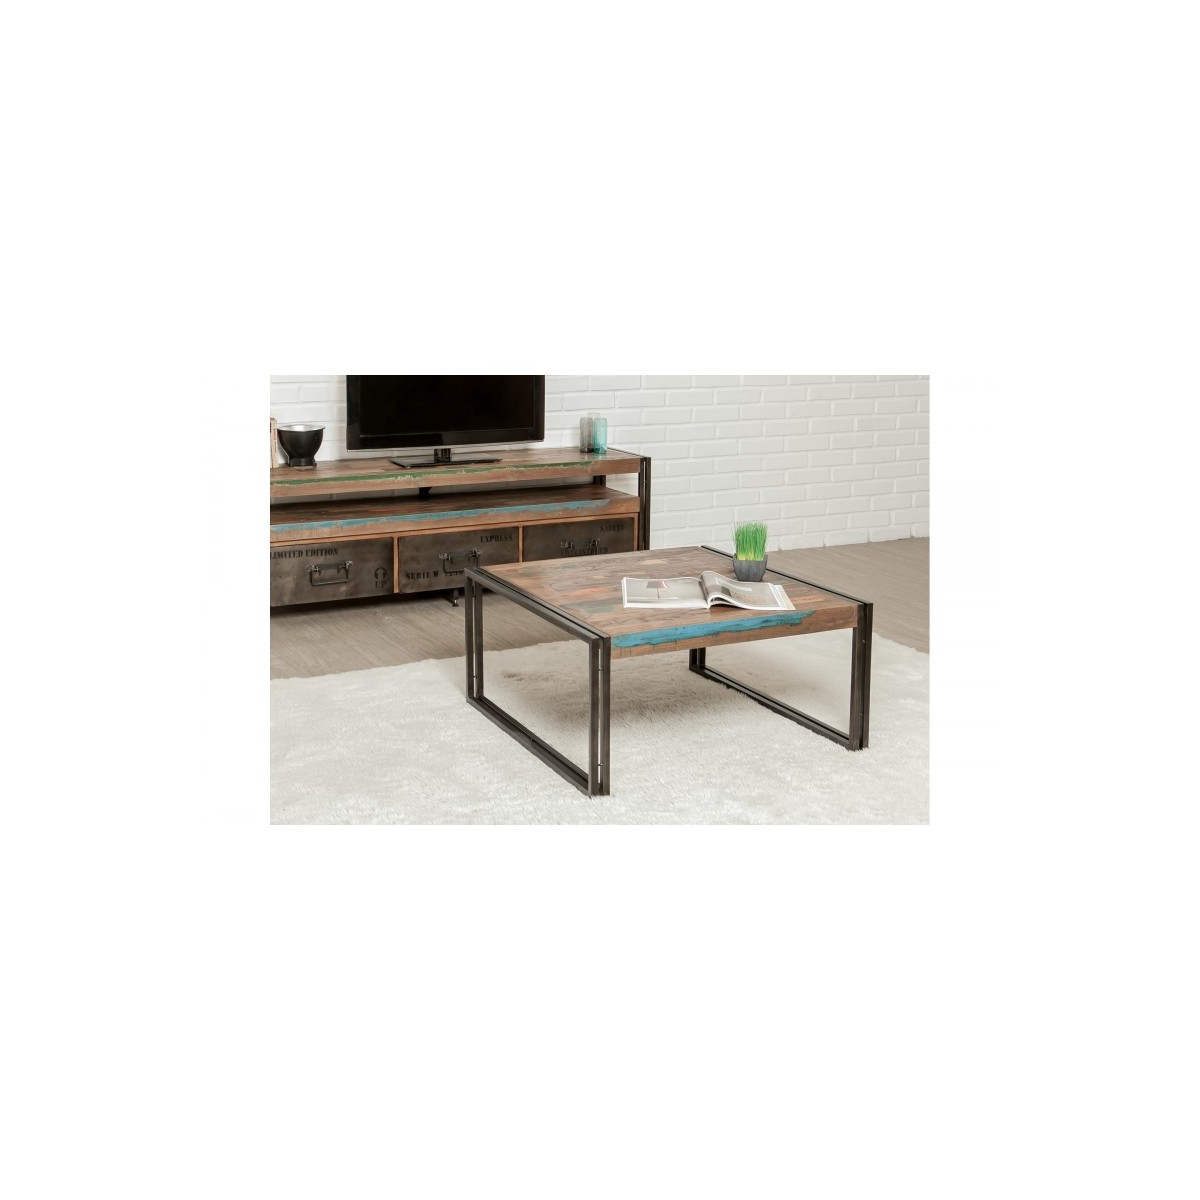 Square Low Table Vintage Noah In Solid Recycled Teak And Metal 80x80x40cm